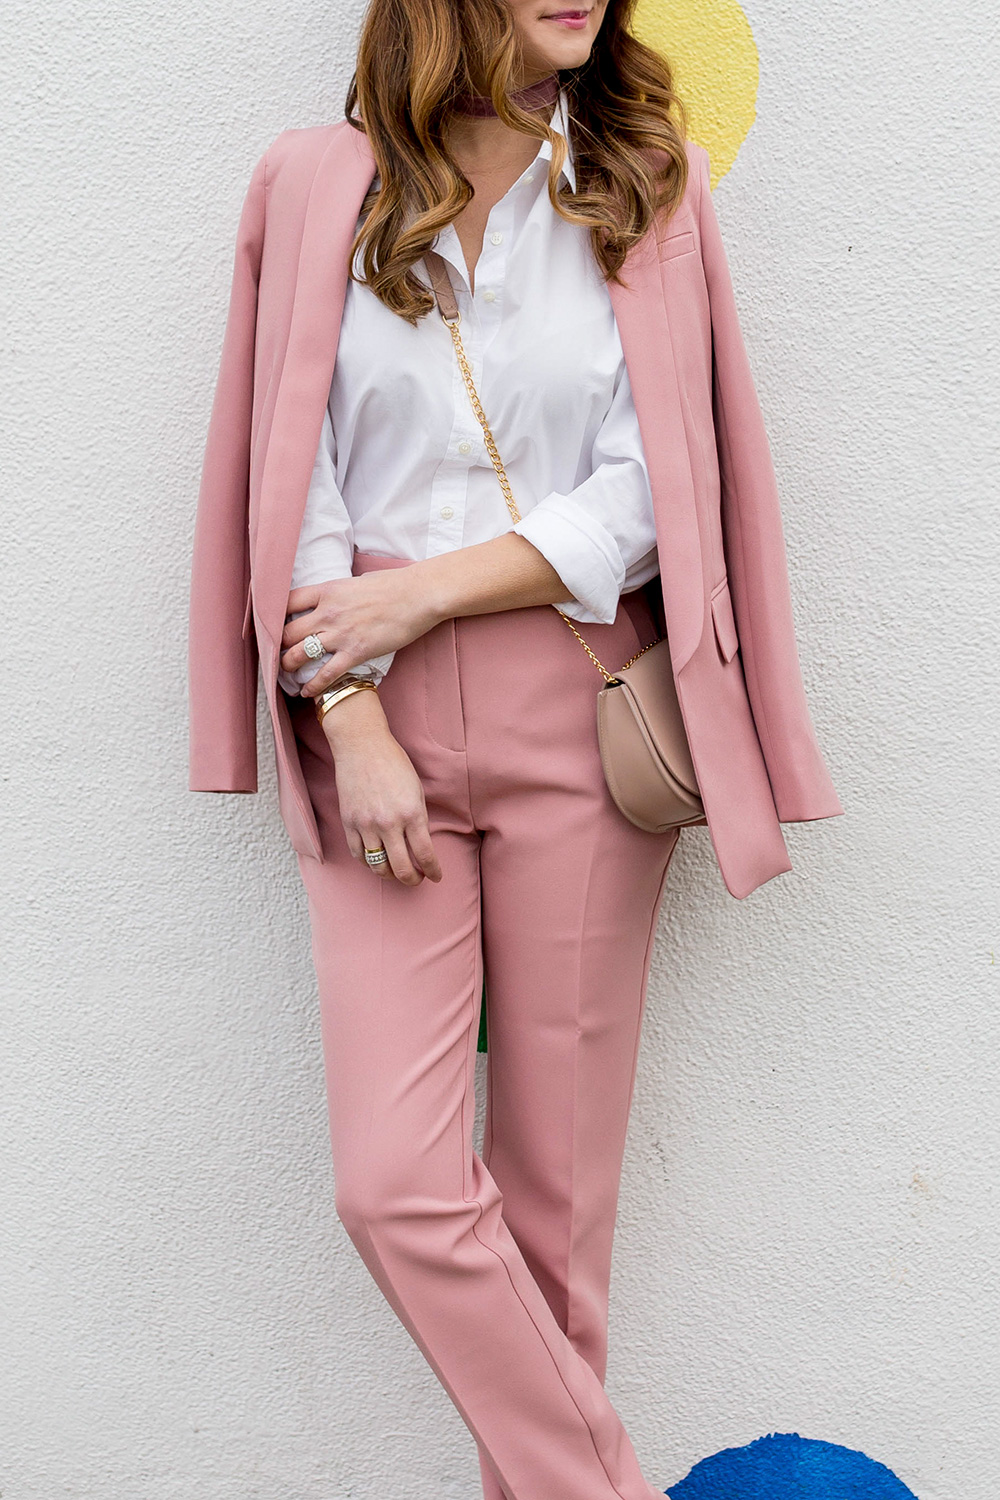 Blush Pink Outfit